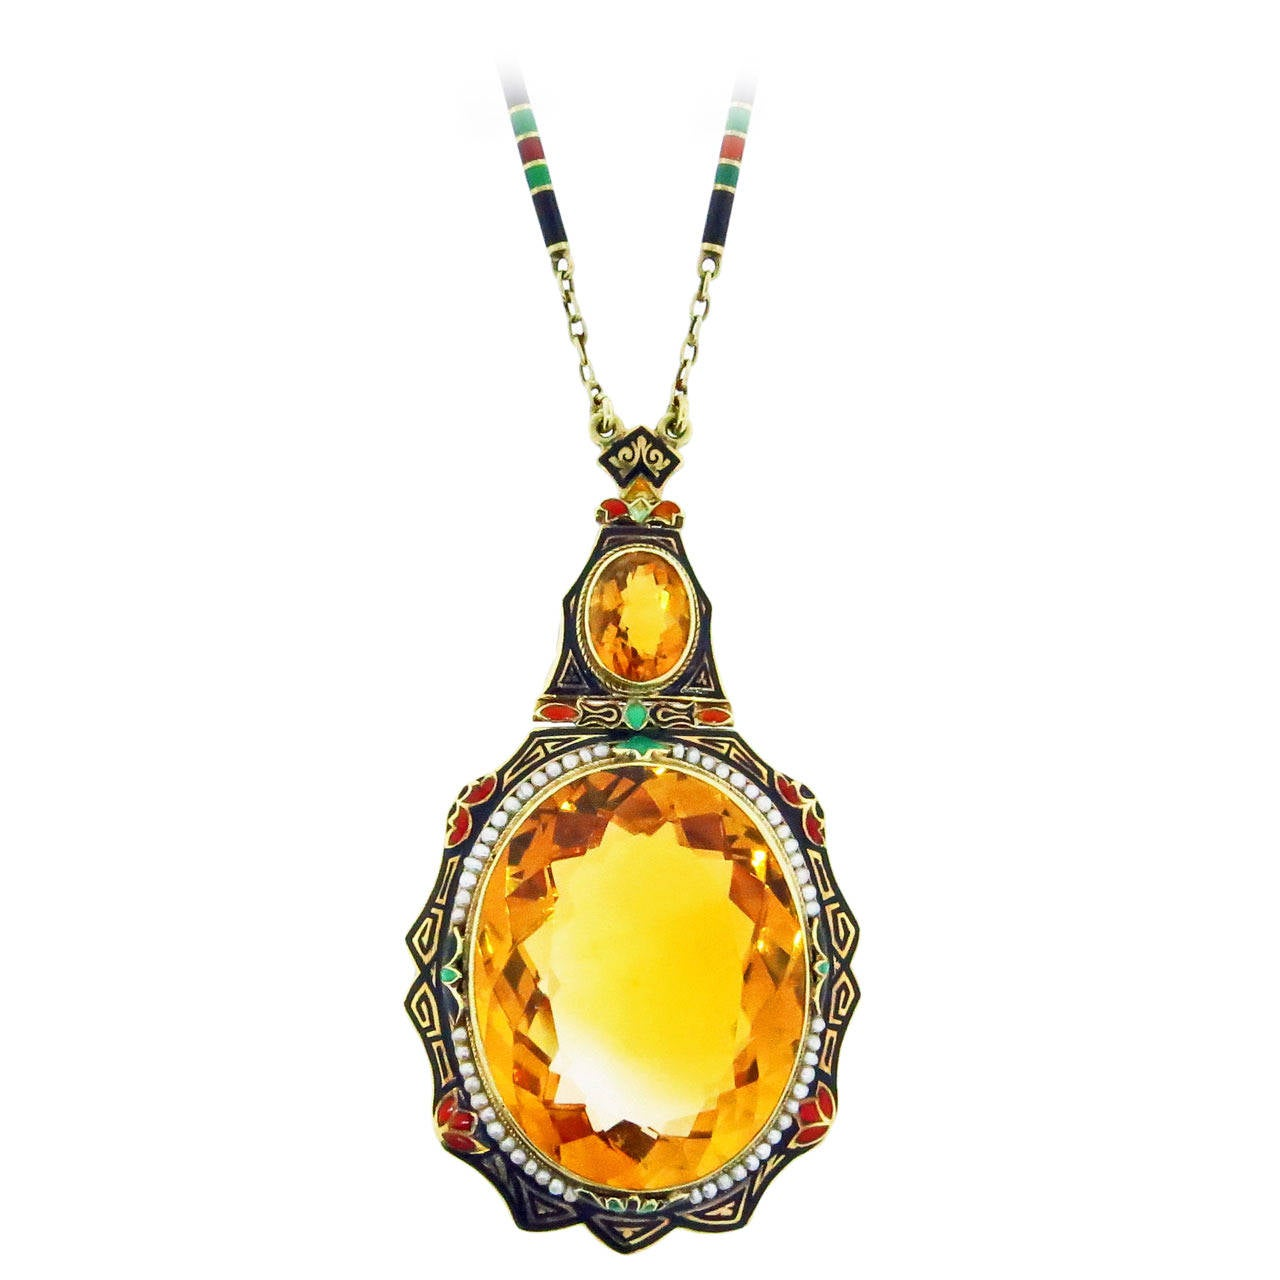 Distinctive Art Deco Enamel Citrine Pearl Gold Necklace For Sale